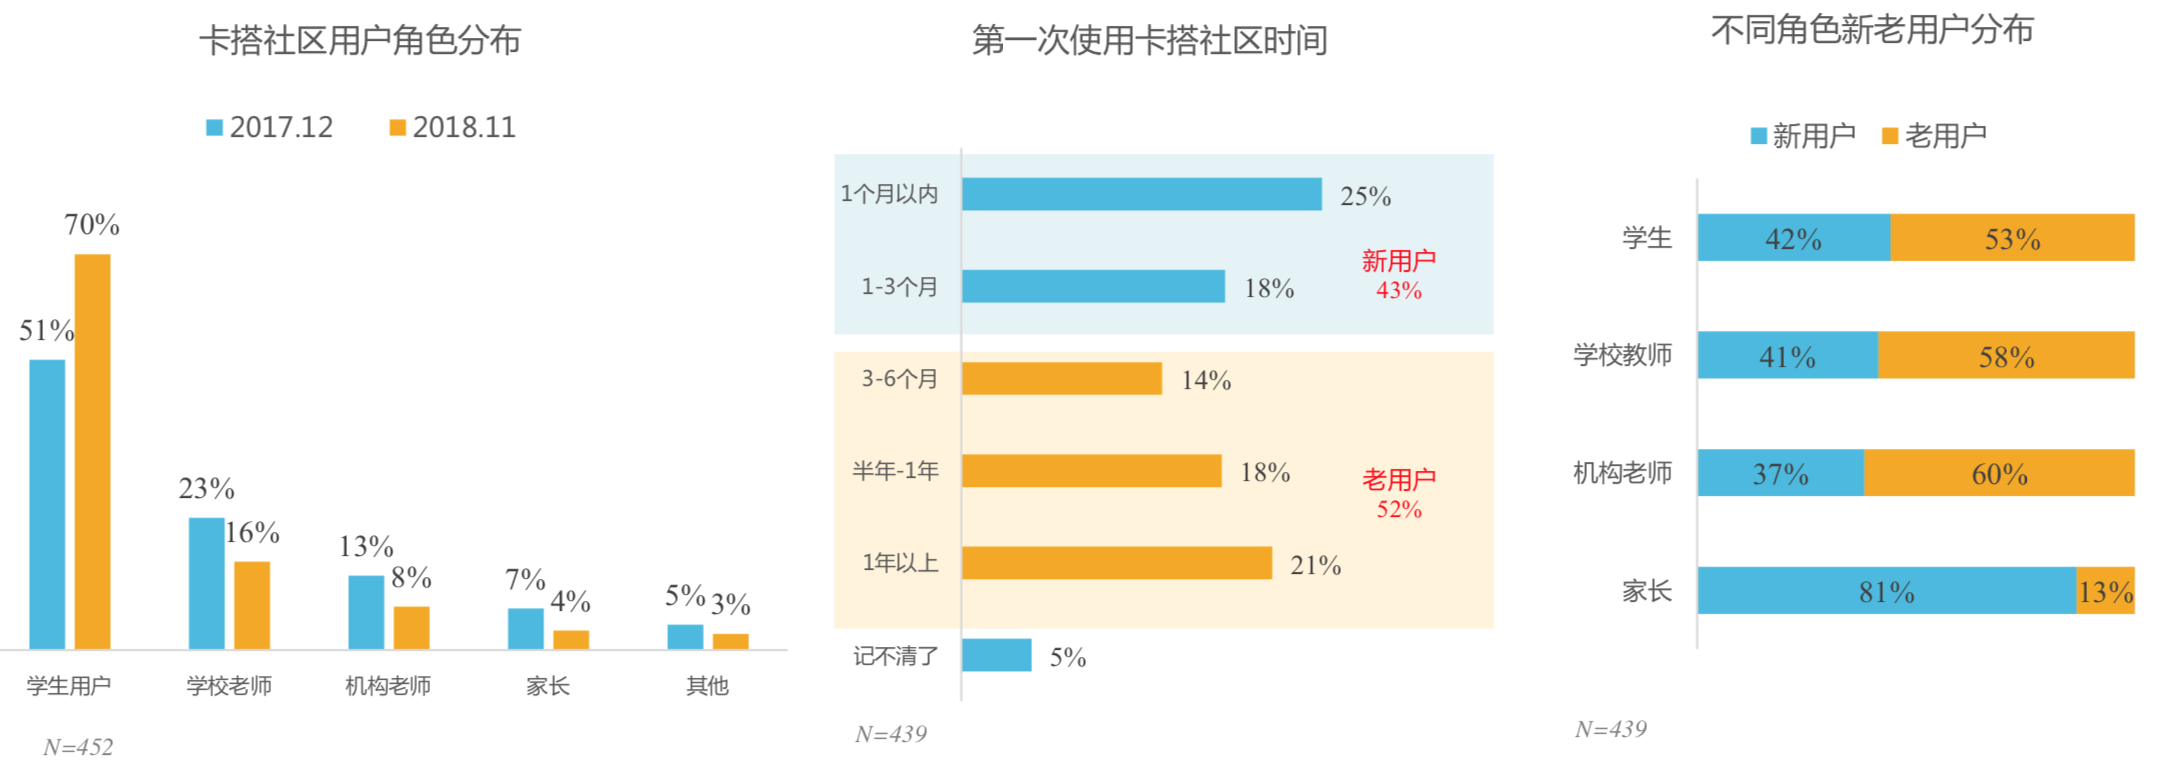 Figure 3.1: Percentage of user types on KADA. Top 3 are Student, Teacher (public school), and Teacher (private school). Also, Student users grew 19% in one year.